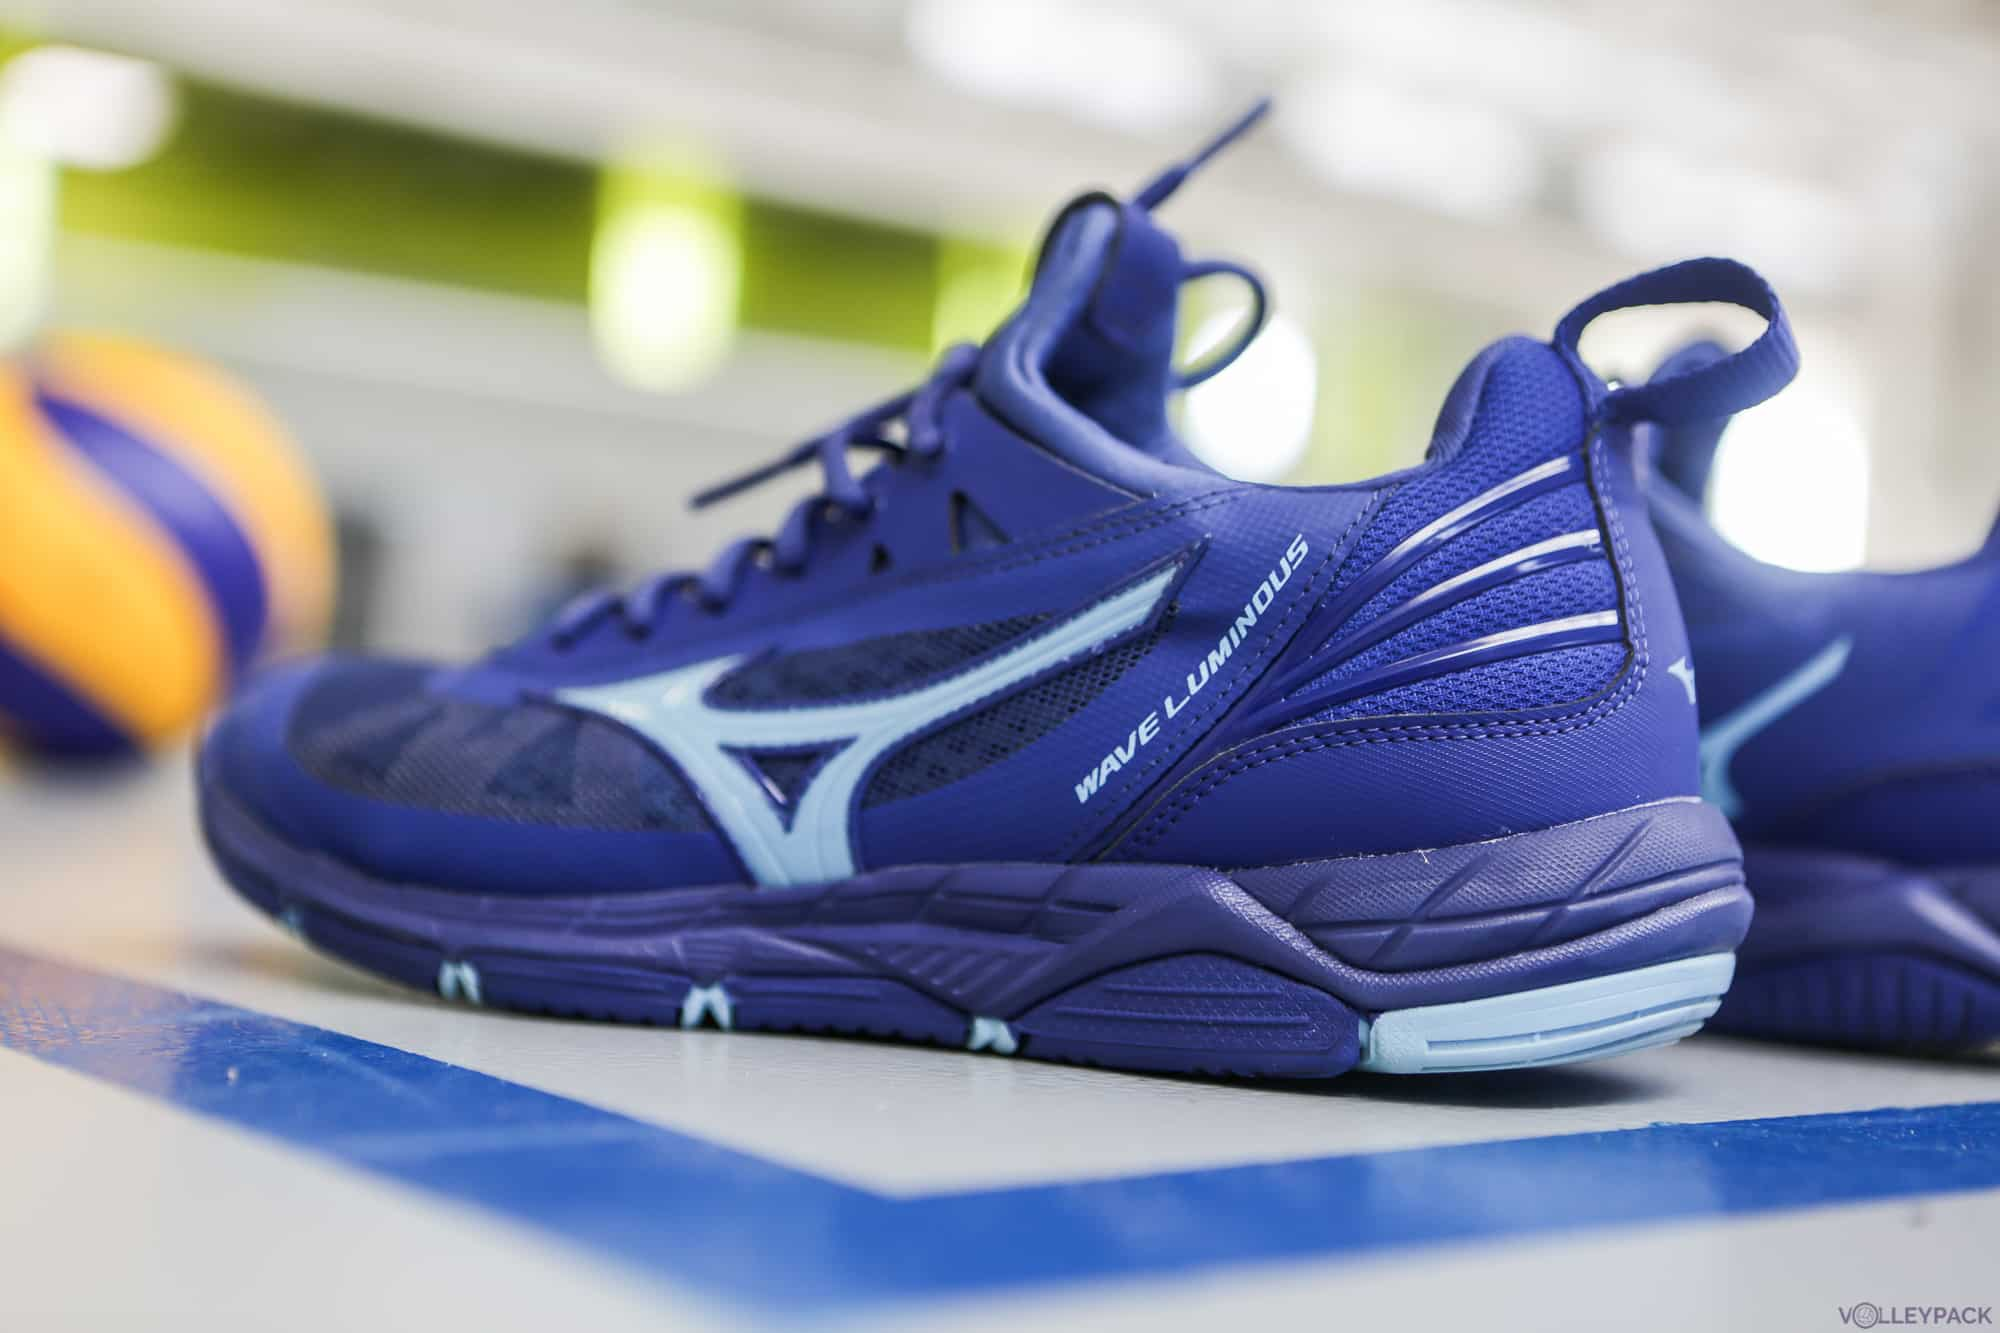 test-mizuno-wave-luminous-volleypack-7